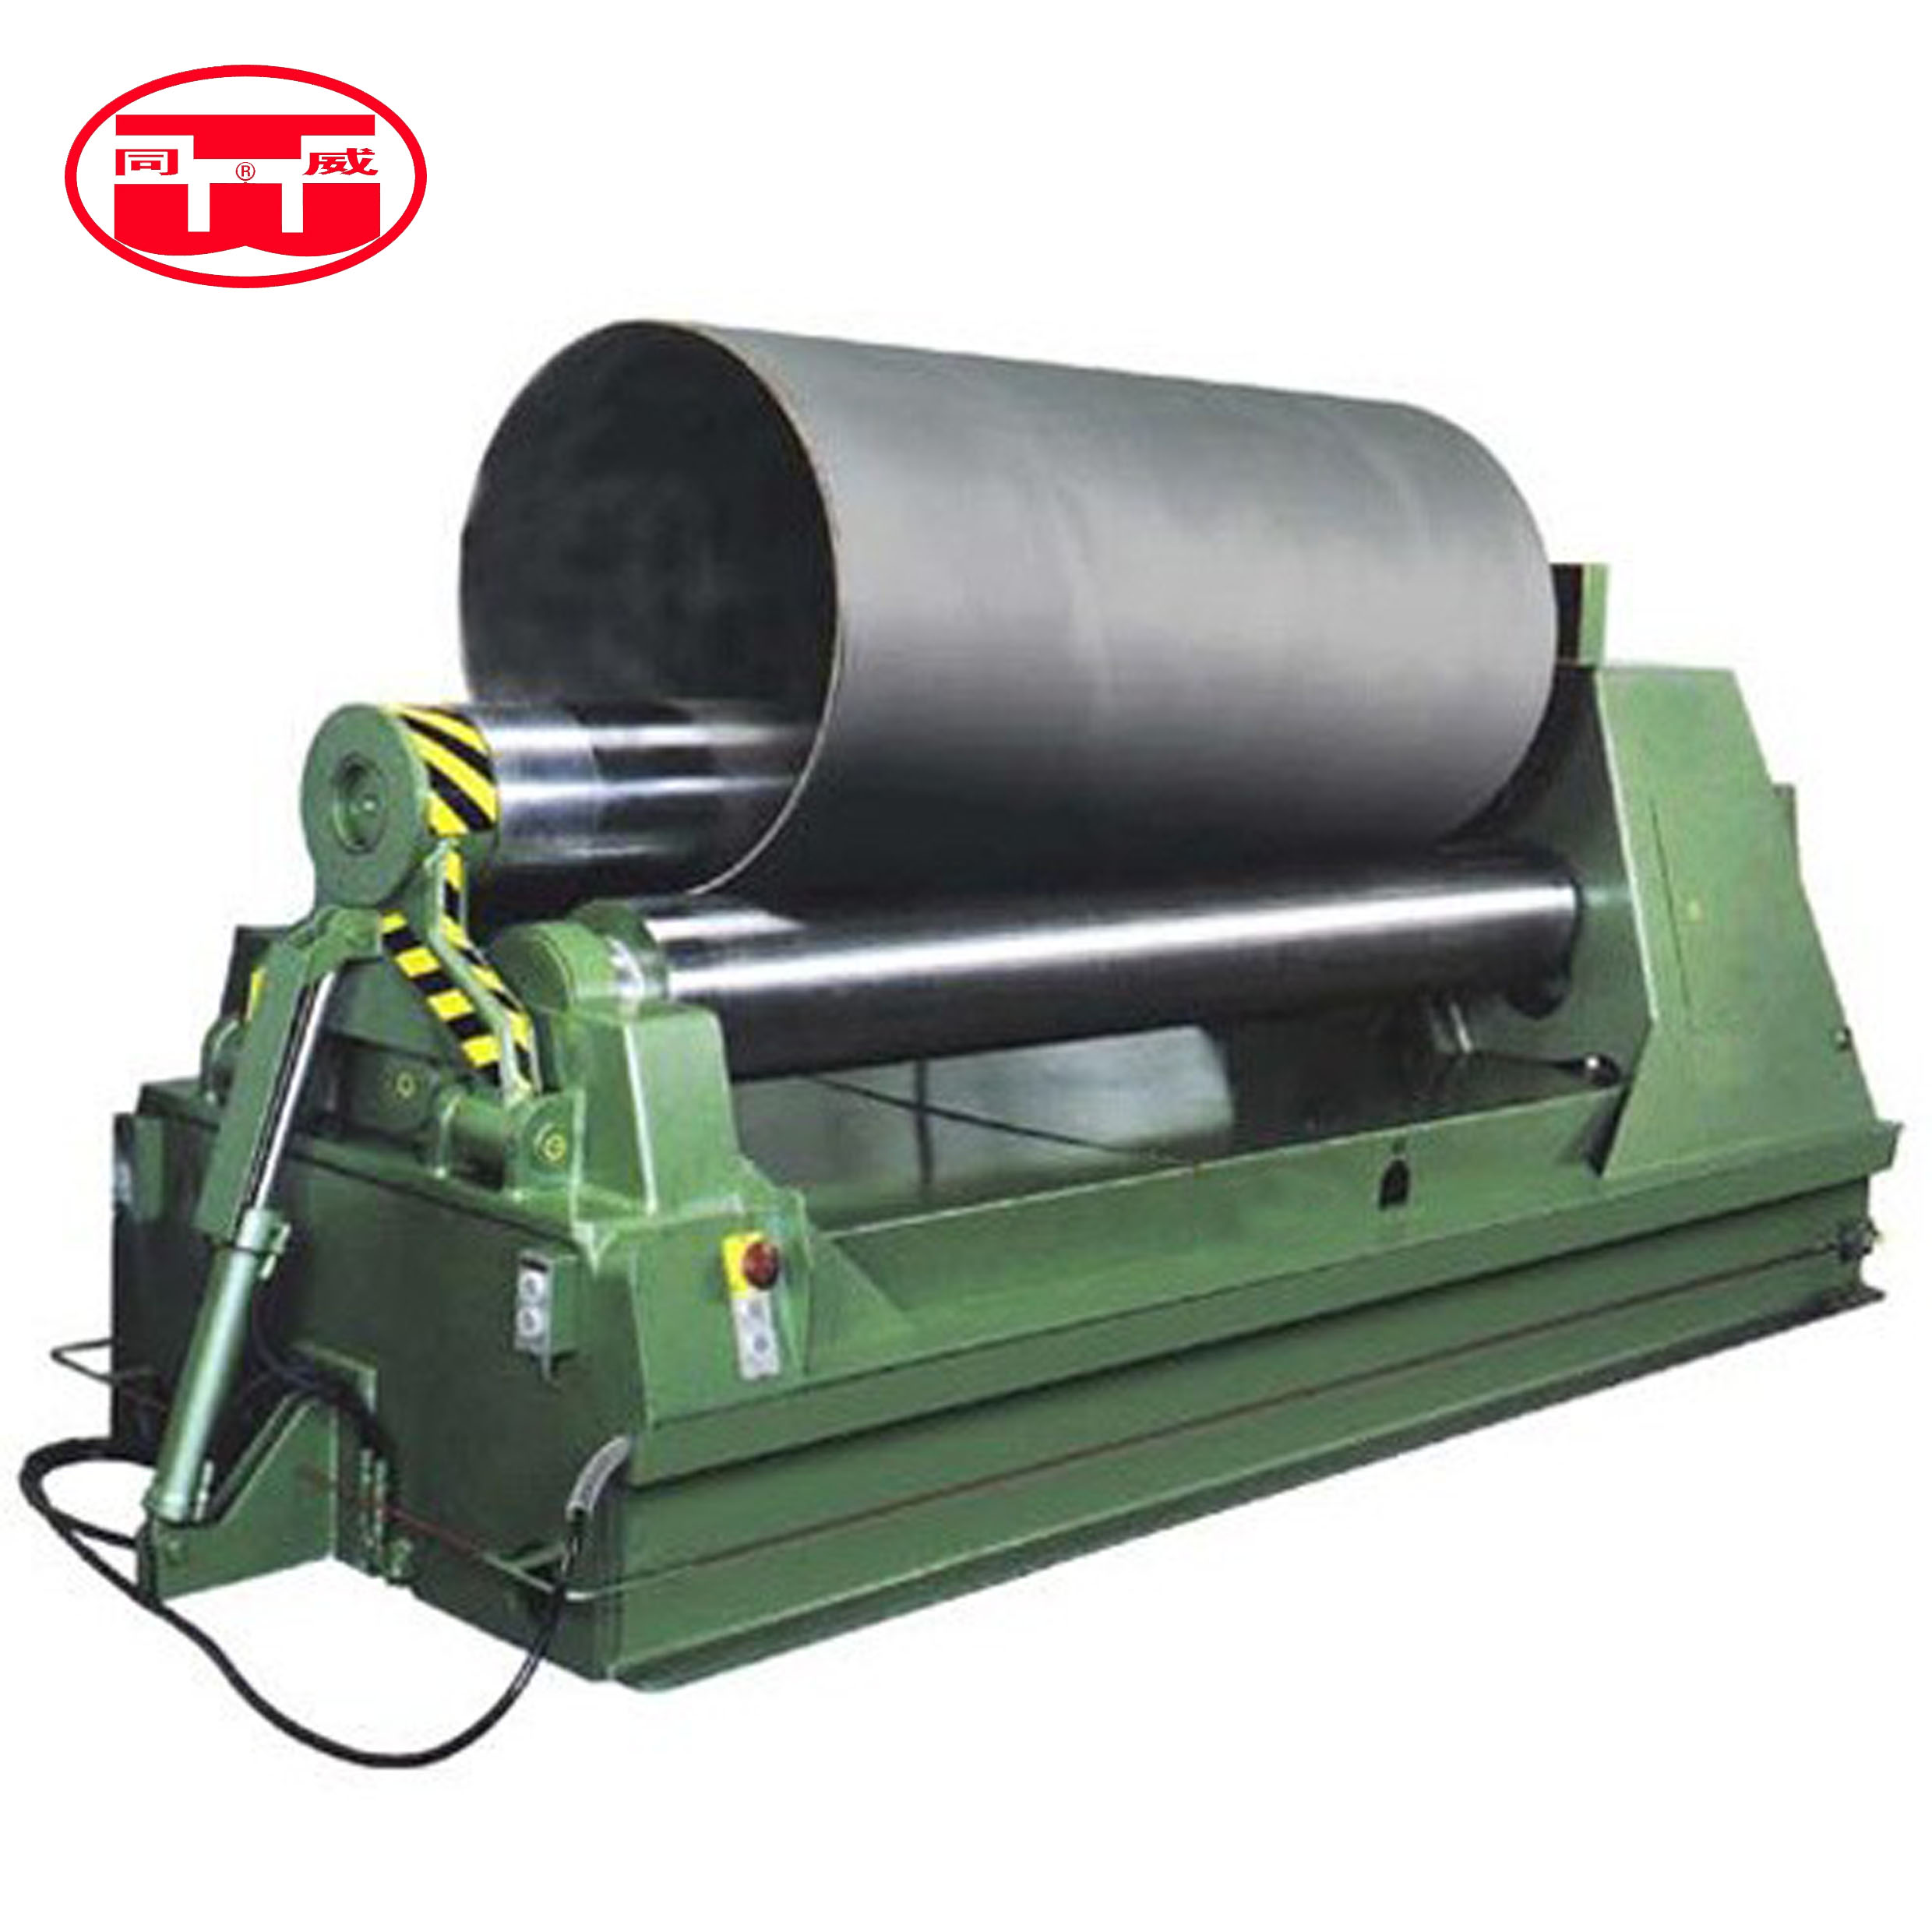 3 <strong>Roller</strong> Plate Bending Machine, 4 Rolls Roll Bending Machine, Plate Rolling Machine